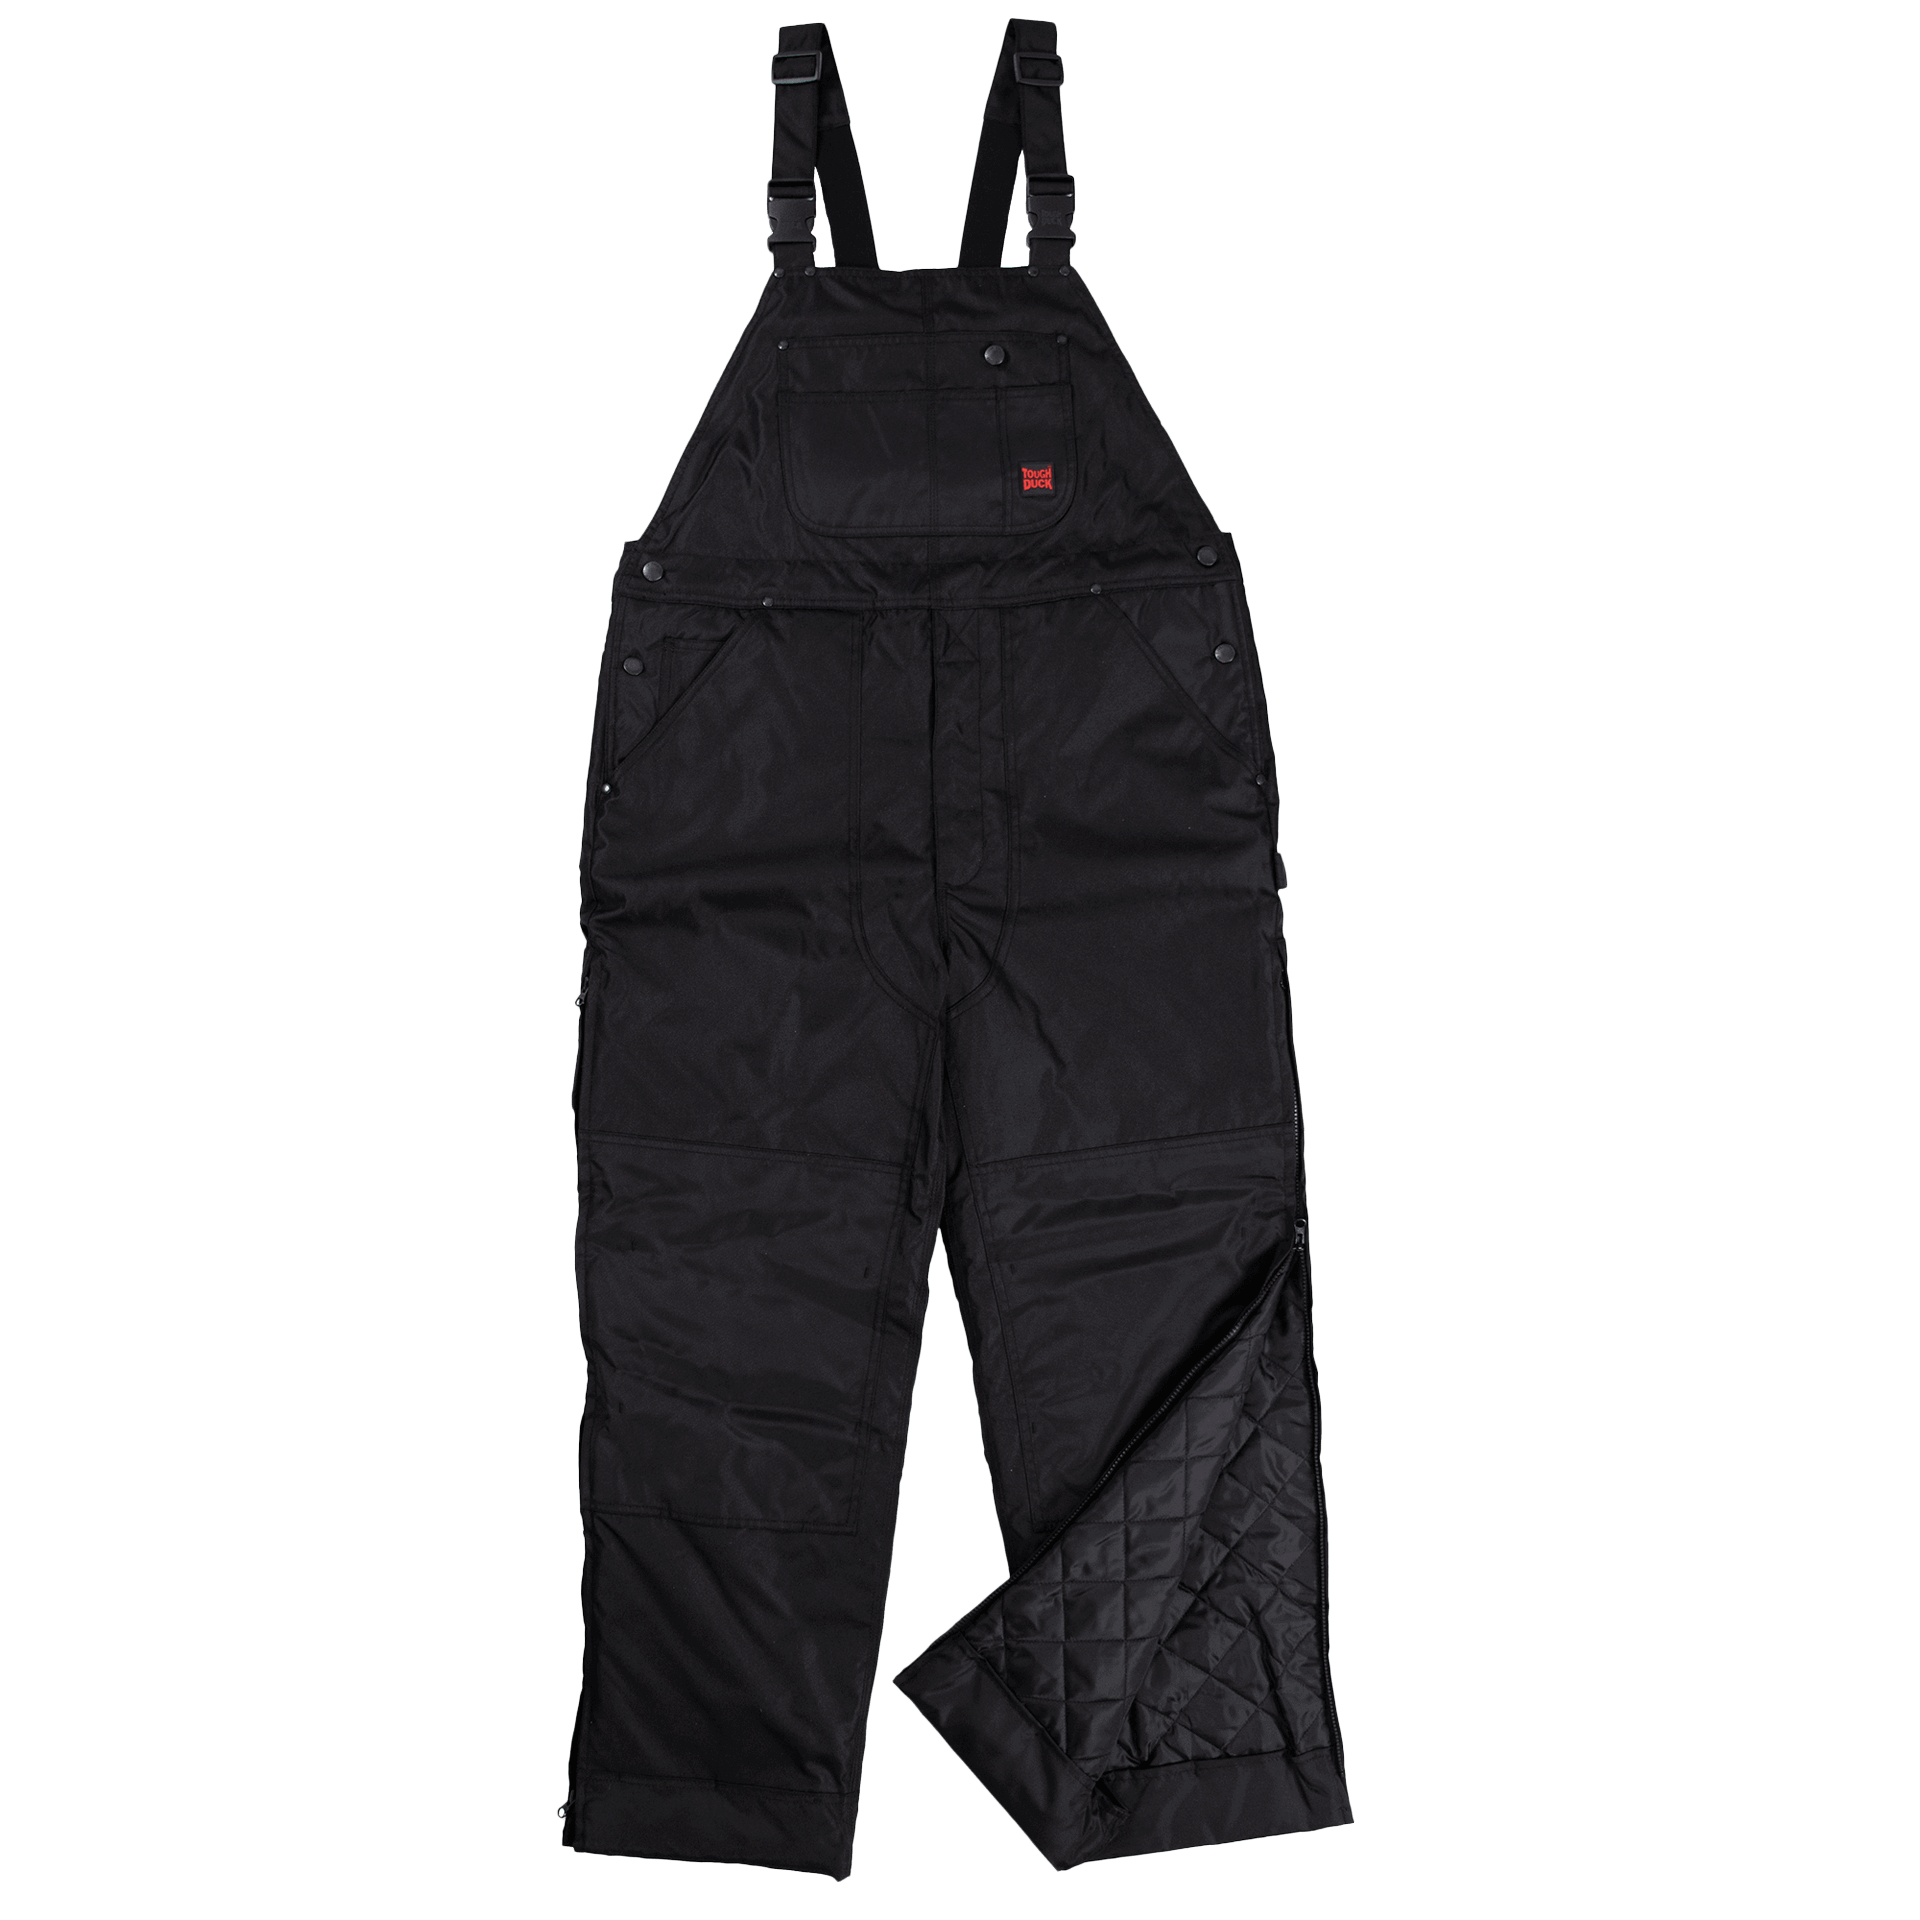 Tough Duck Poly Oxford Insulated Bib Overall - 7910